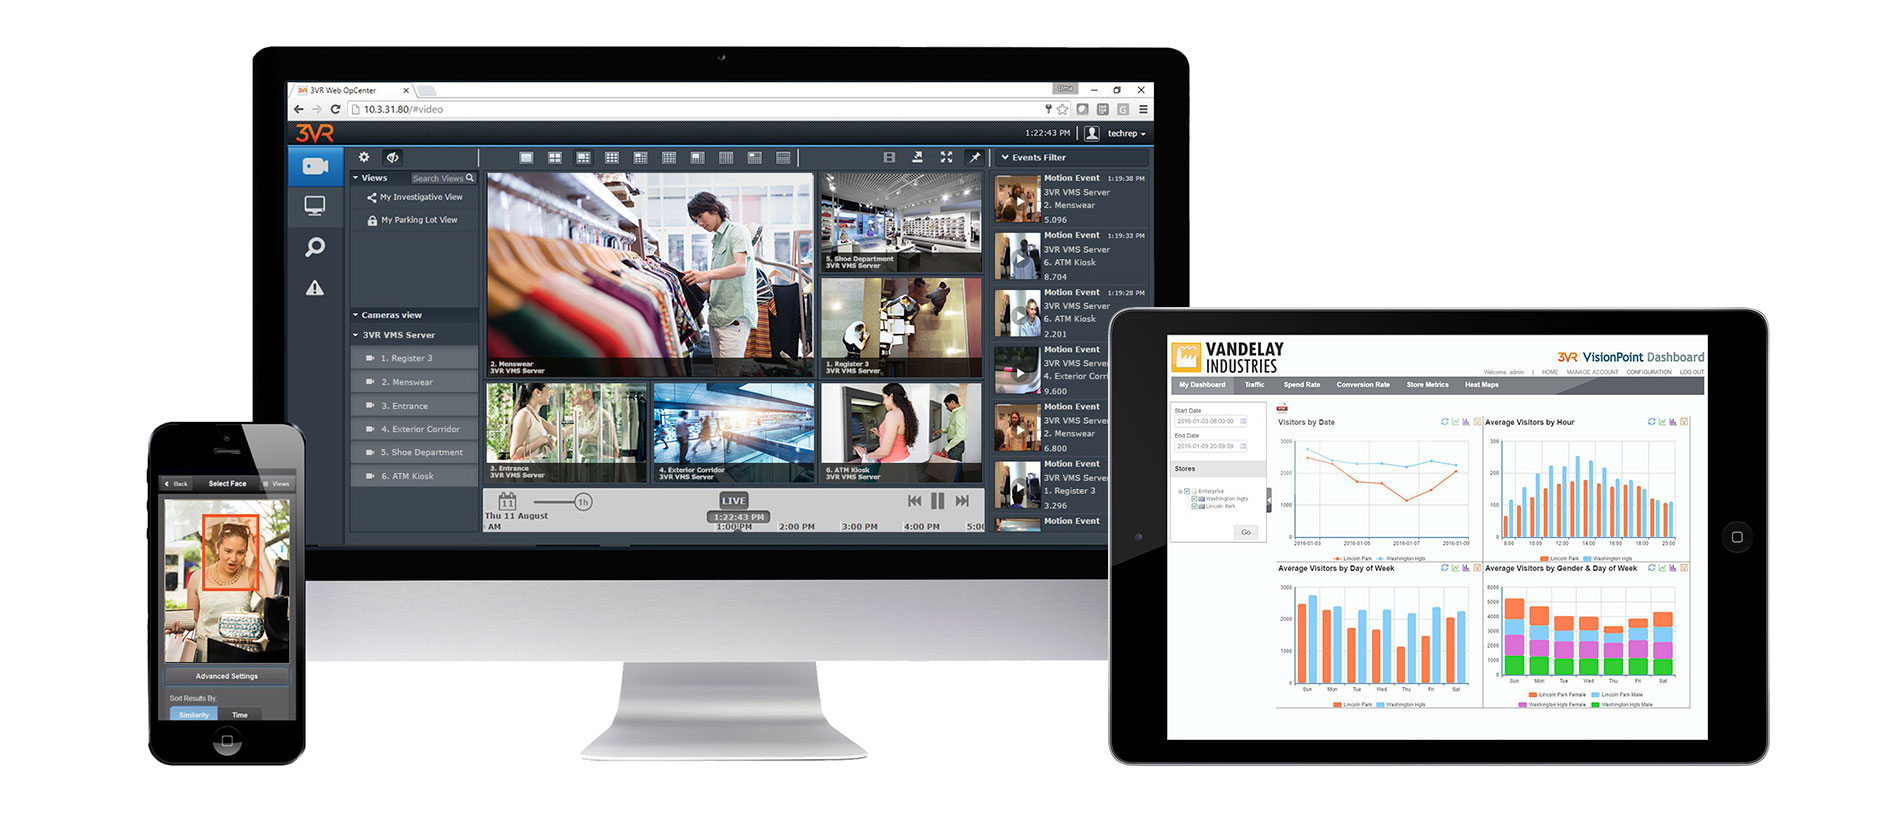 Identiv Video Management Software (VMS)